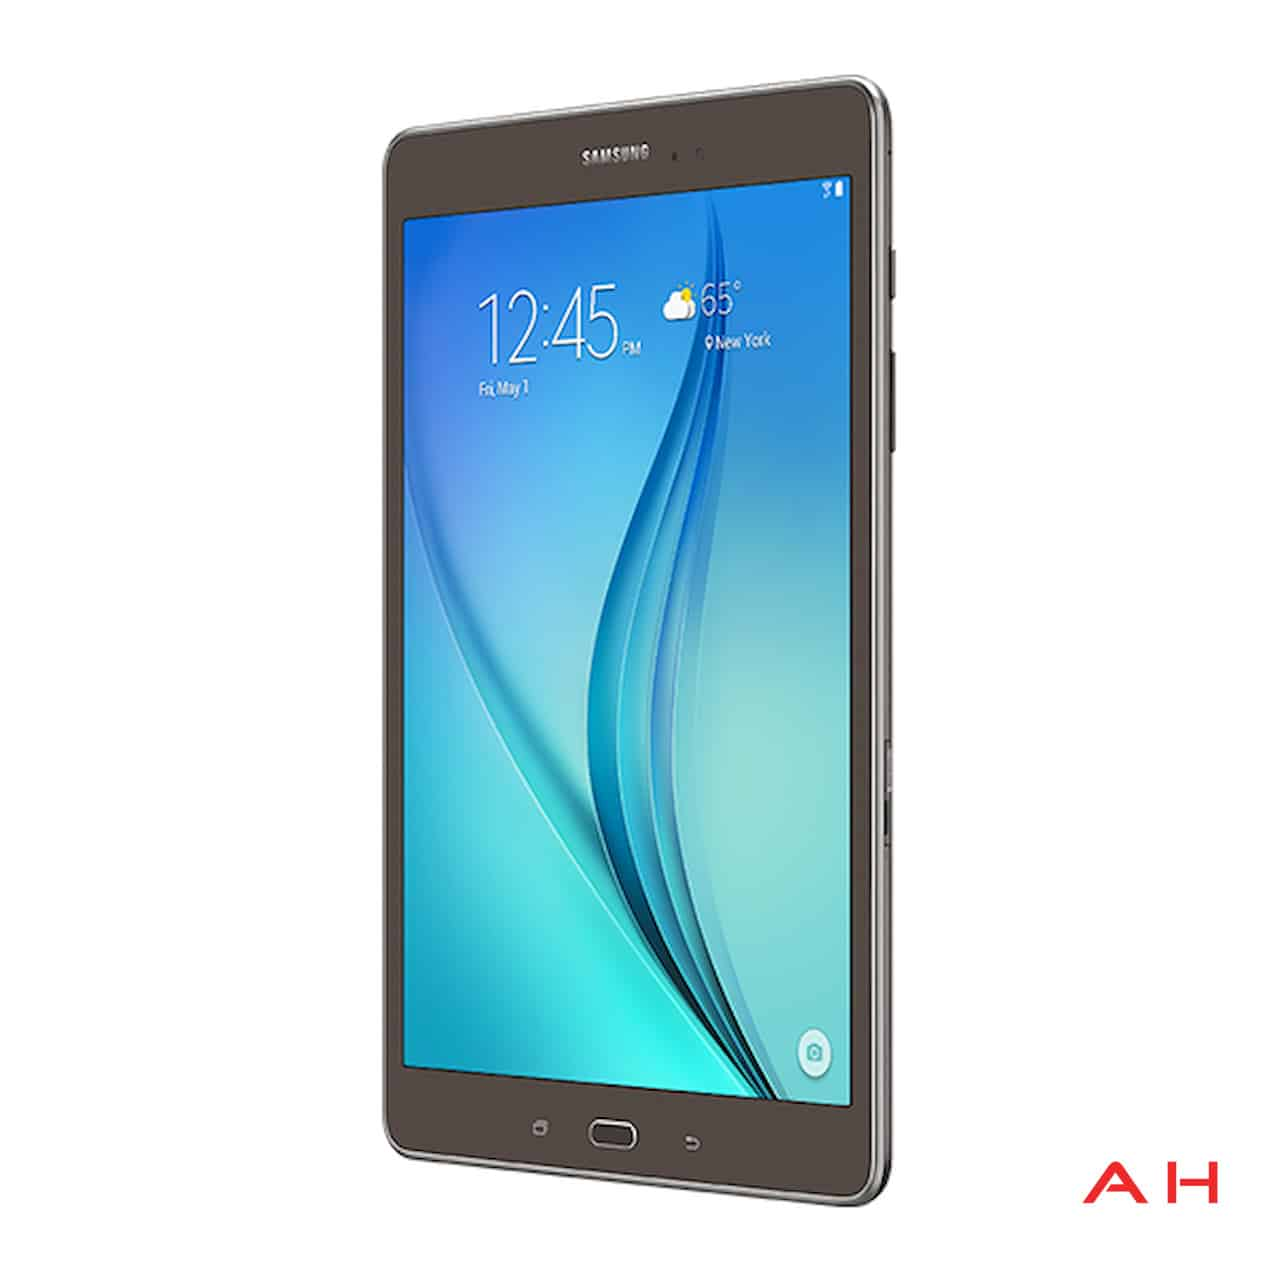 Mobile Set To Launch Samsung39;s Galaxy Tab A 8.0 LTE